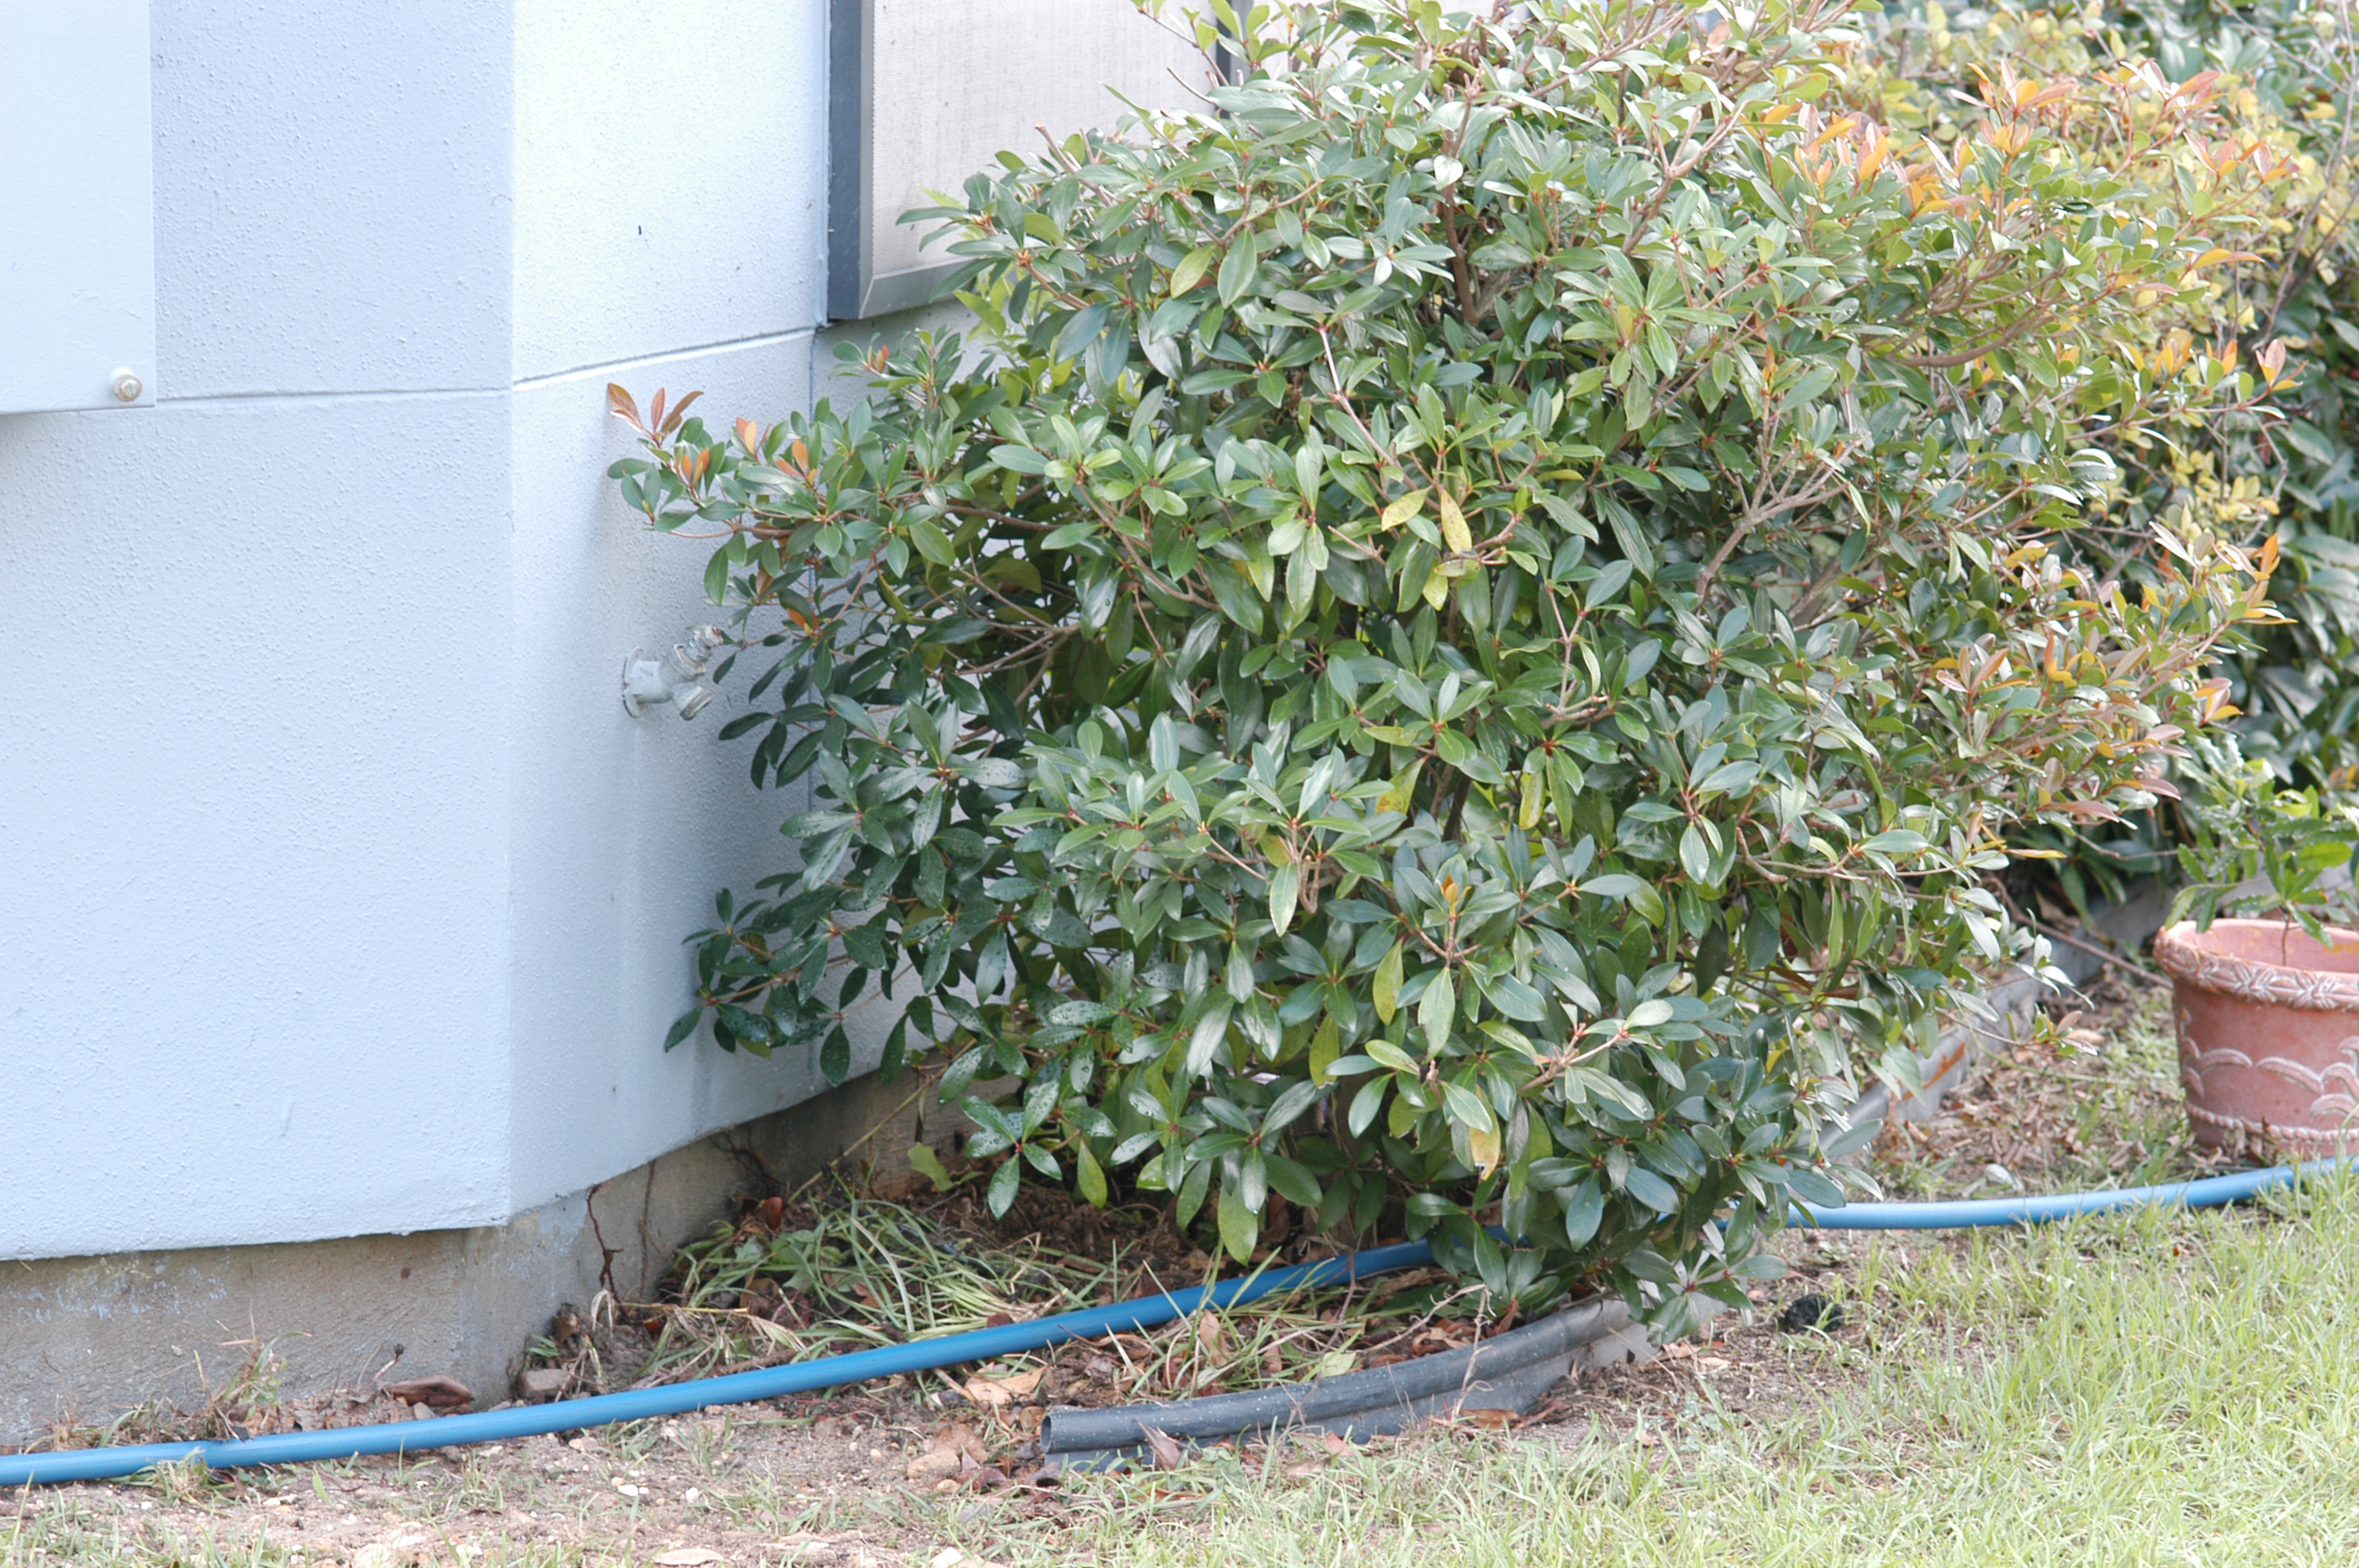 Foundation plantings that are too close to the building increase the potential for termite infestation and make inspection more difficult.  On the positive side, this building has good spacing between the soil surface and the lower edge of siding.